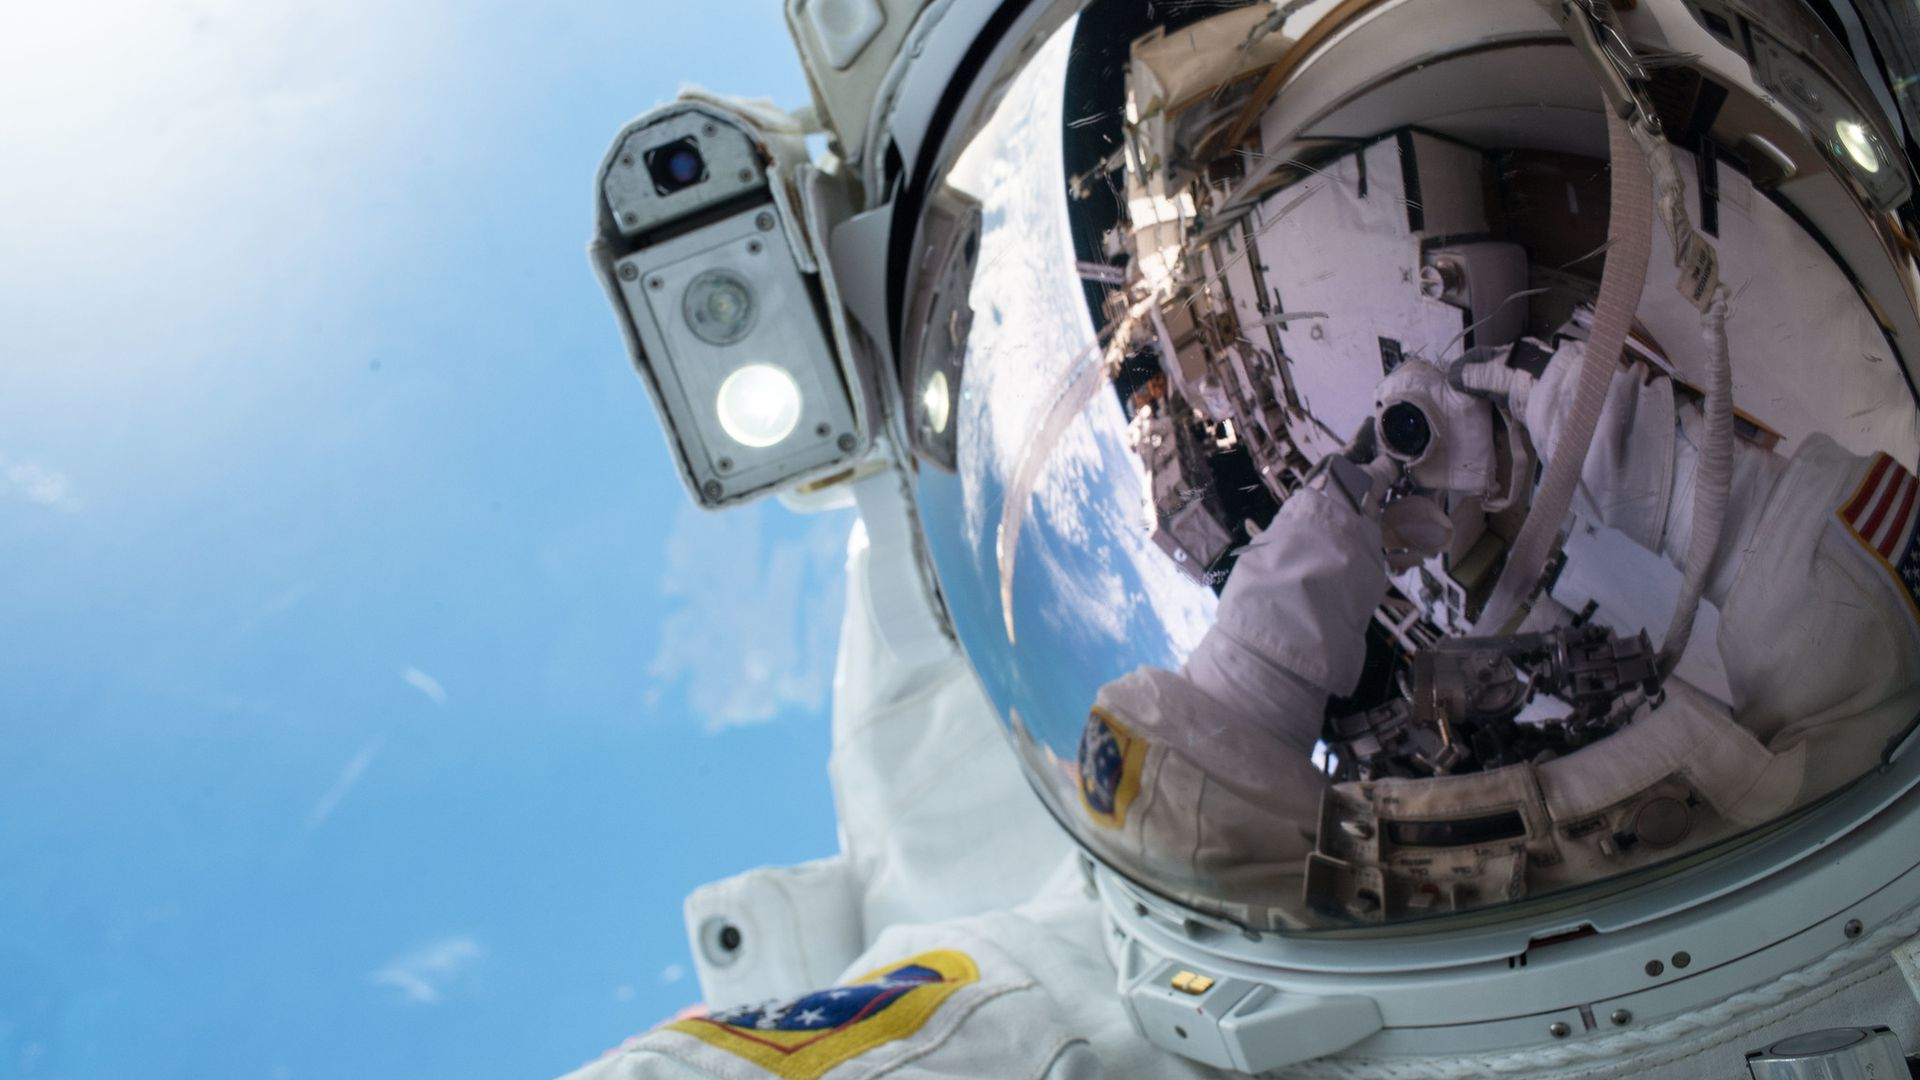 An astronaut selfie in space with Earth in the background